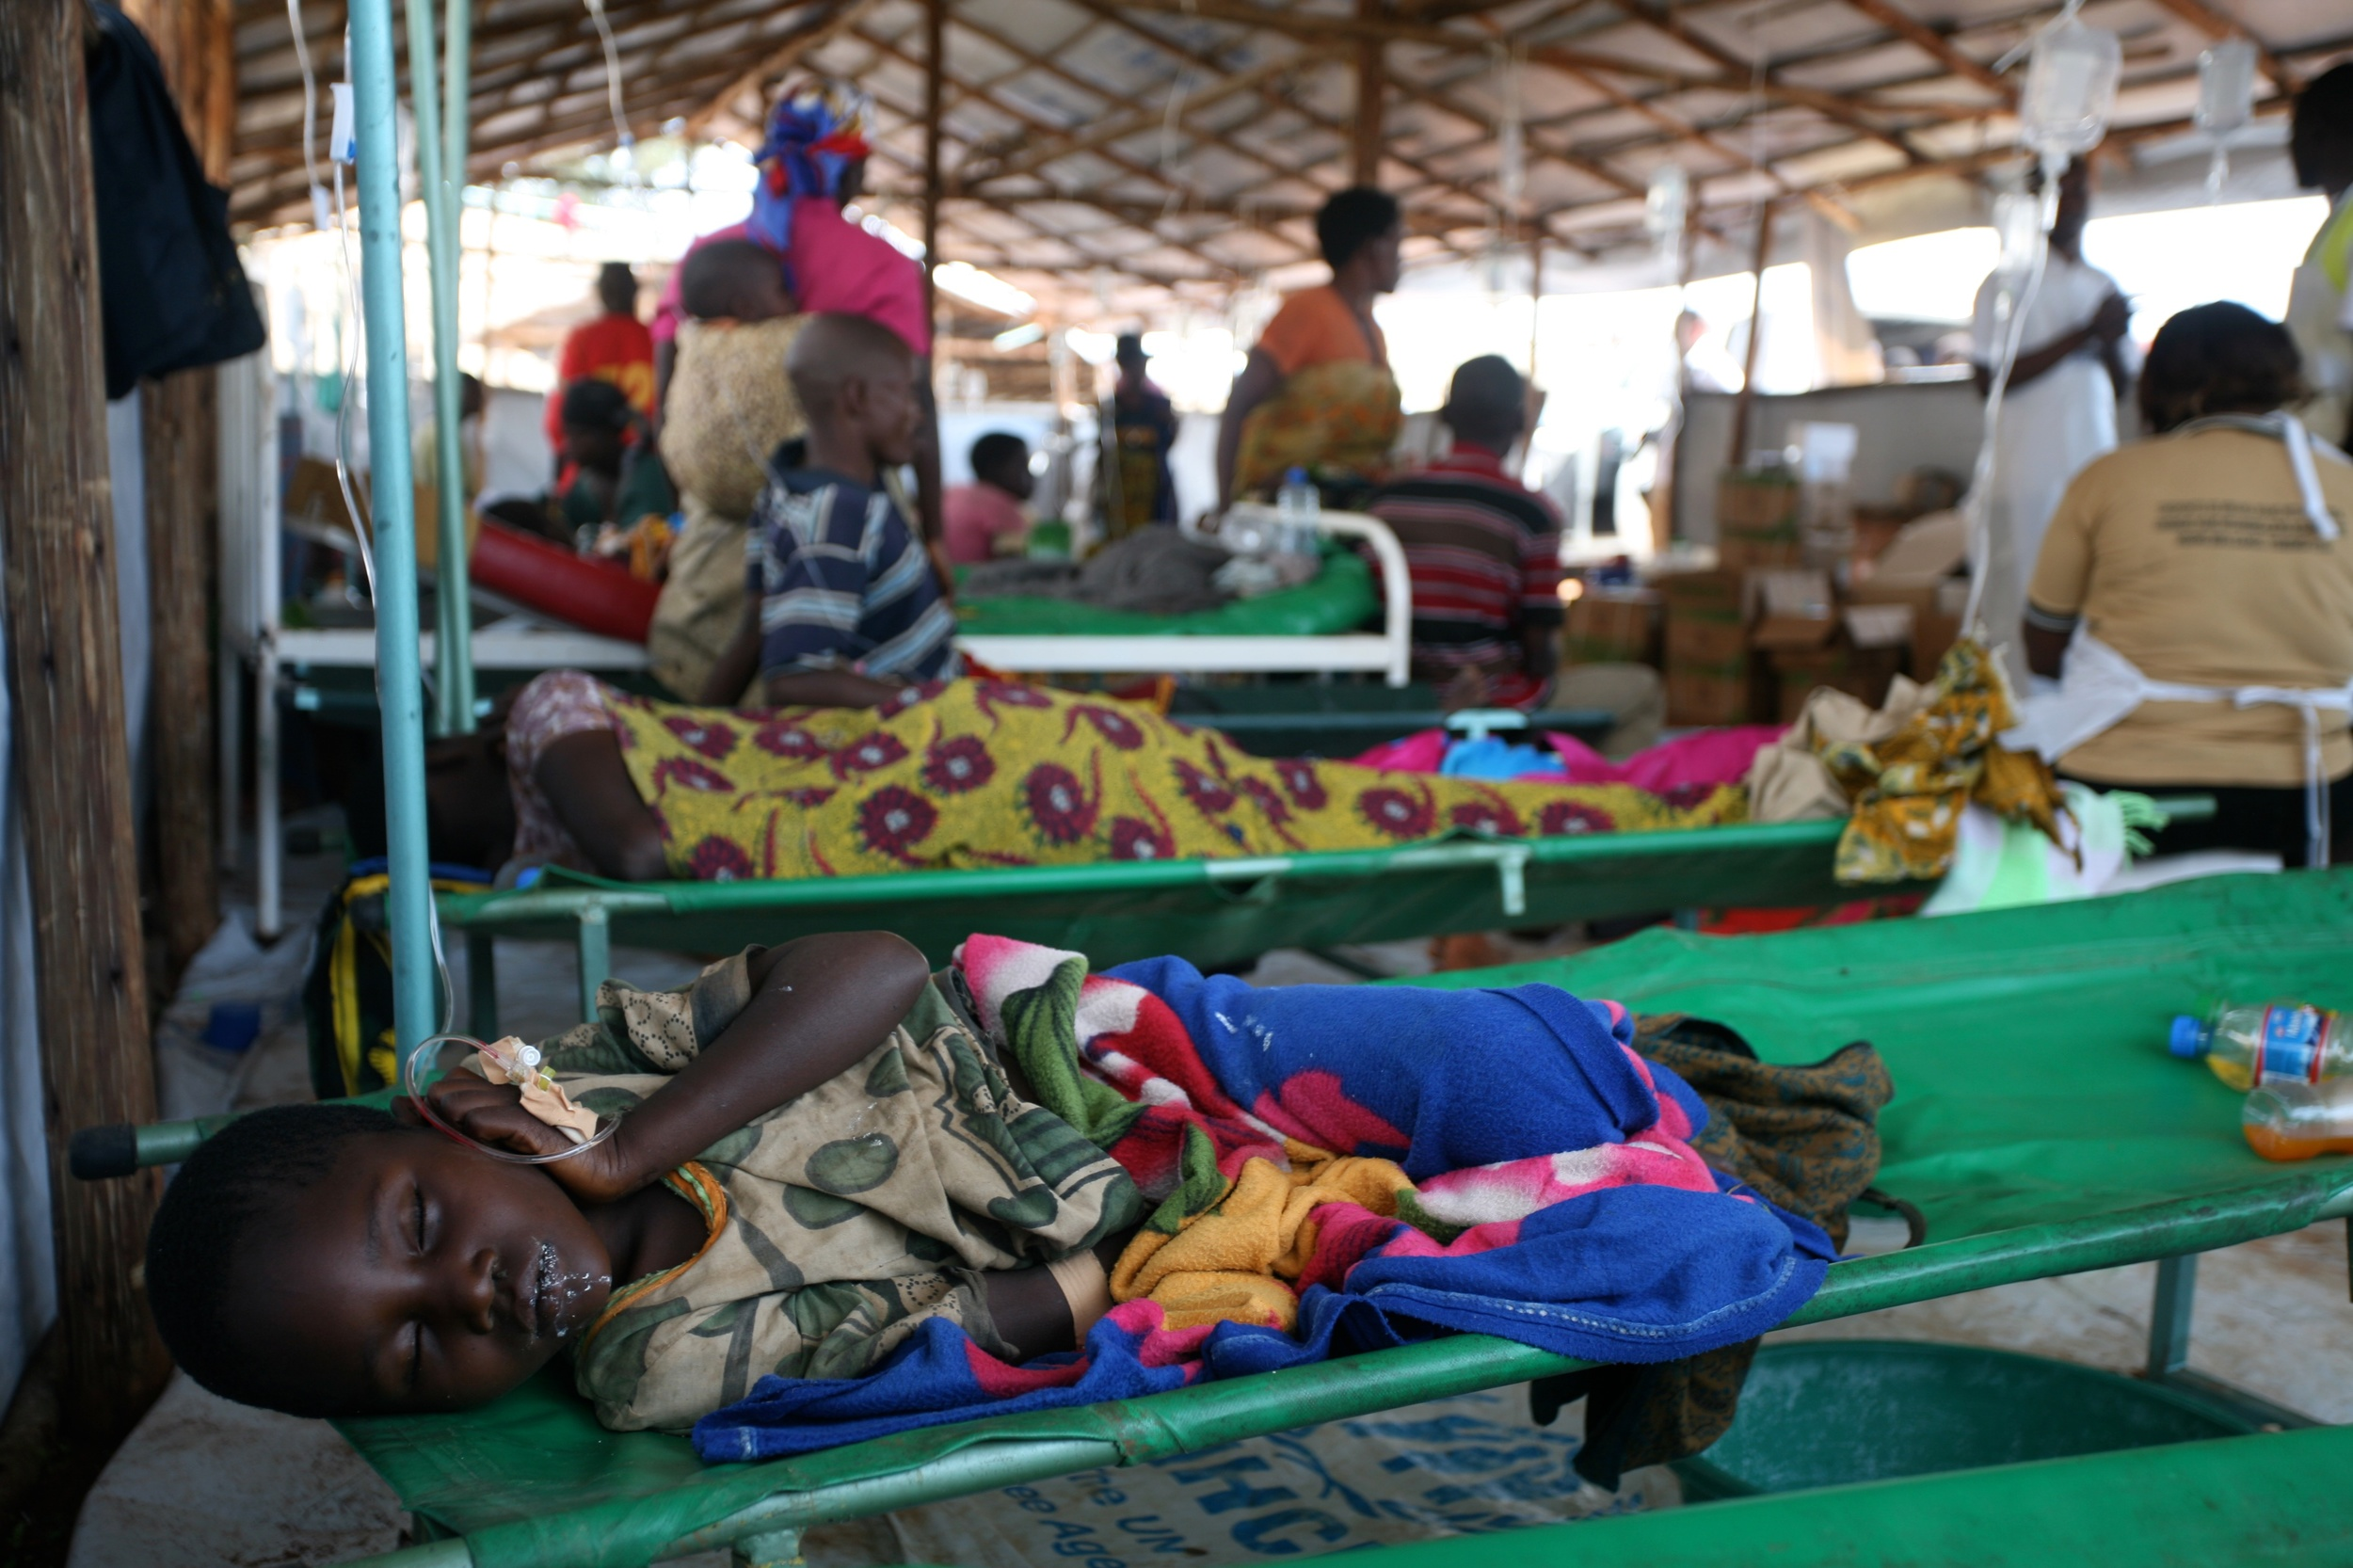 A child recovers from the journey andsleeps in the health clinic at Lake Tanganyika Stadium in Kigoma, Tanzania